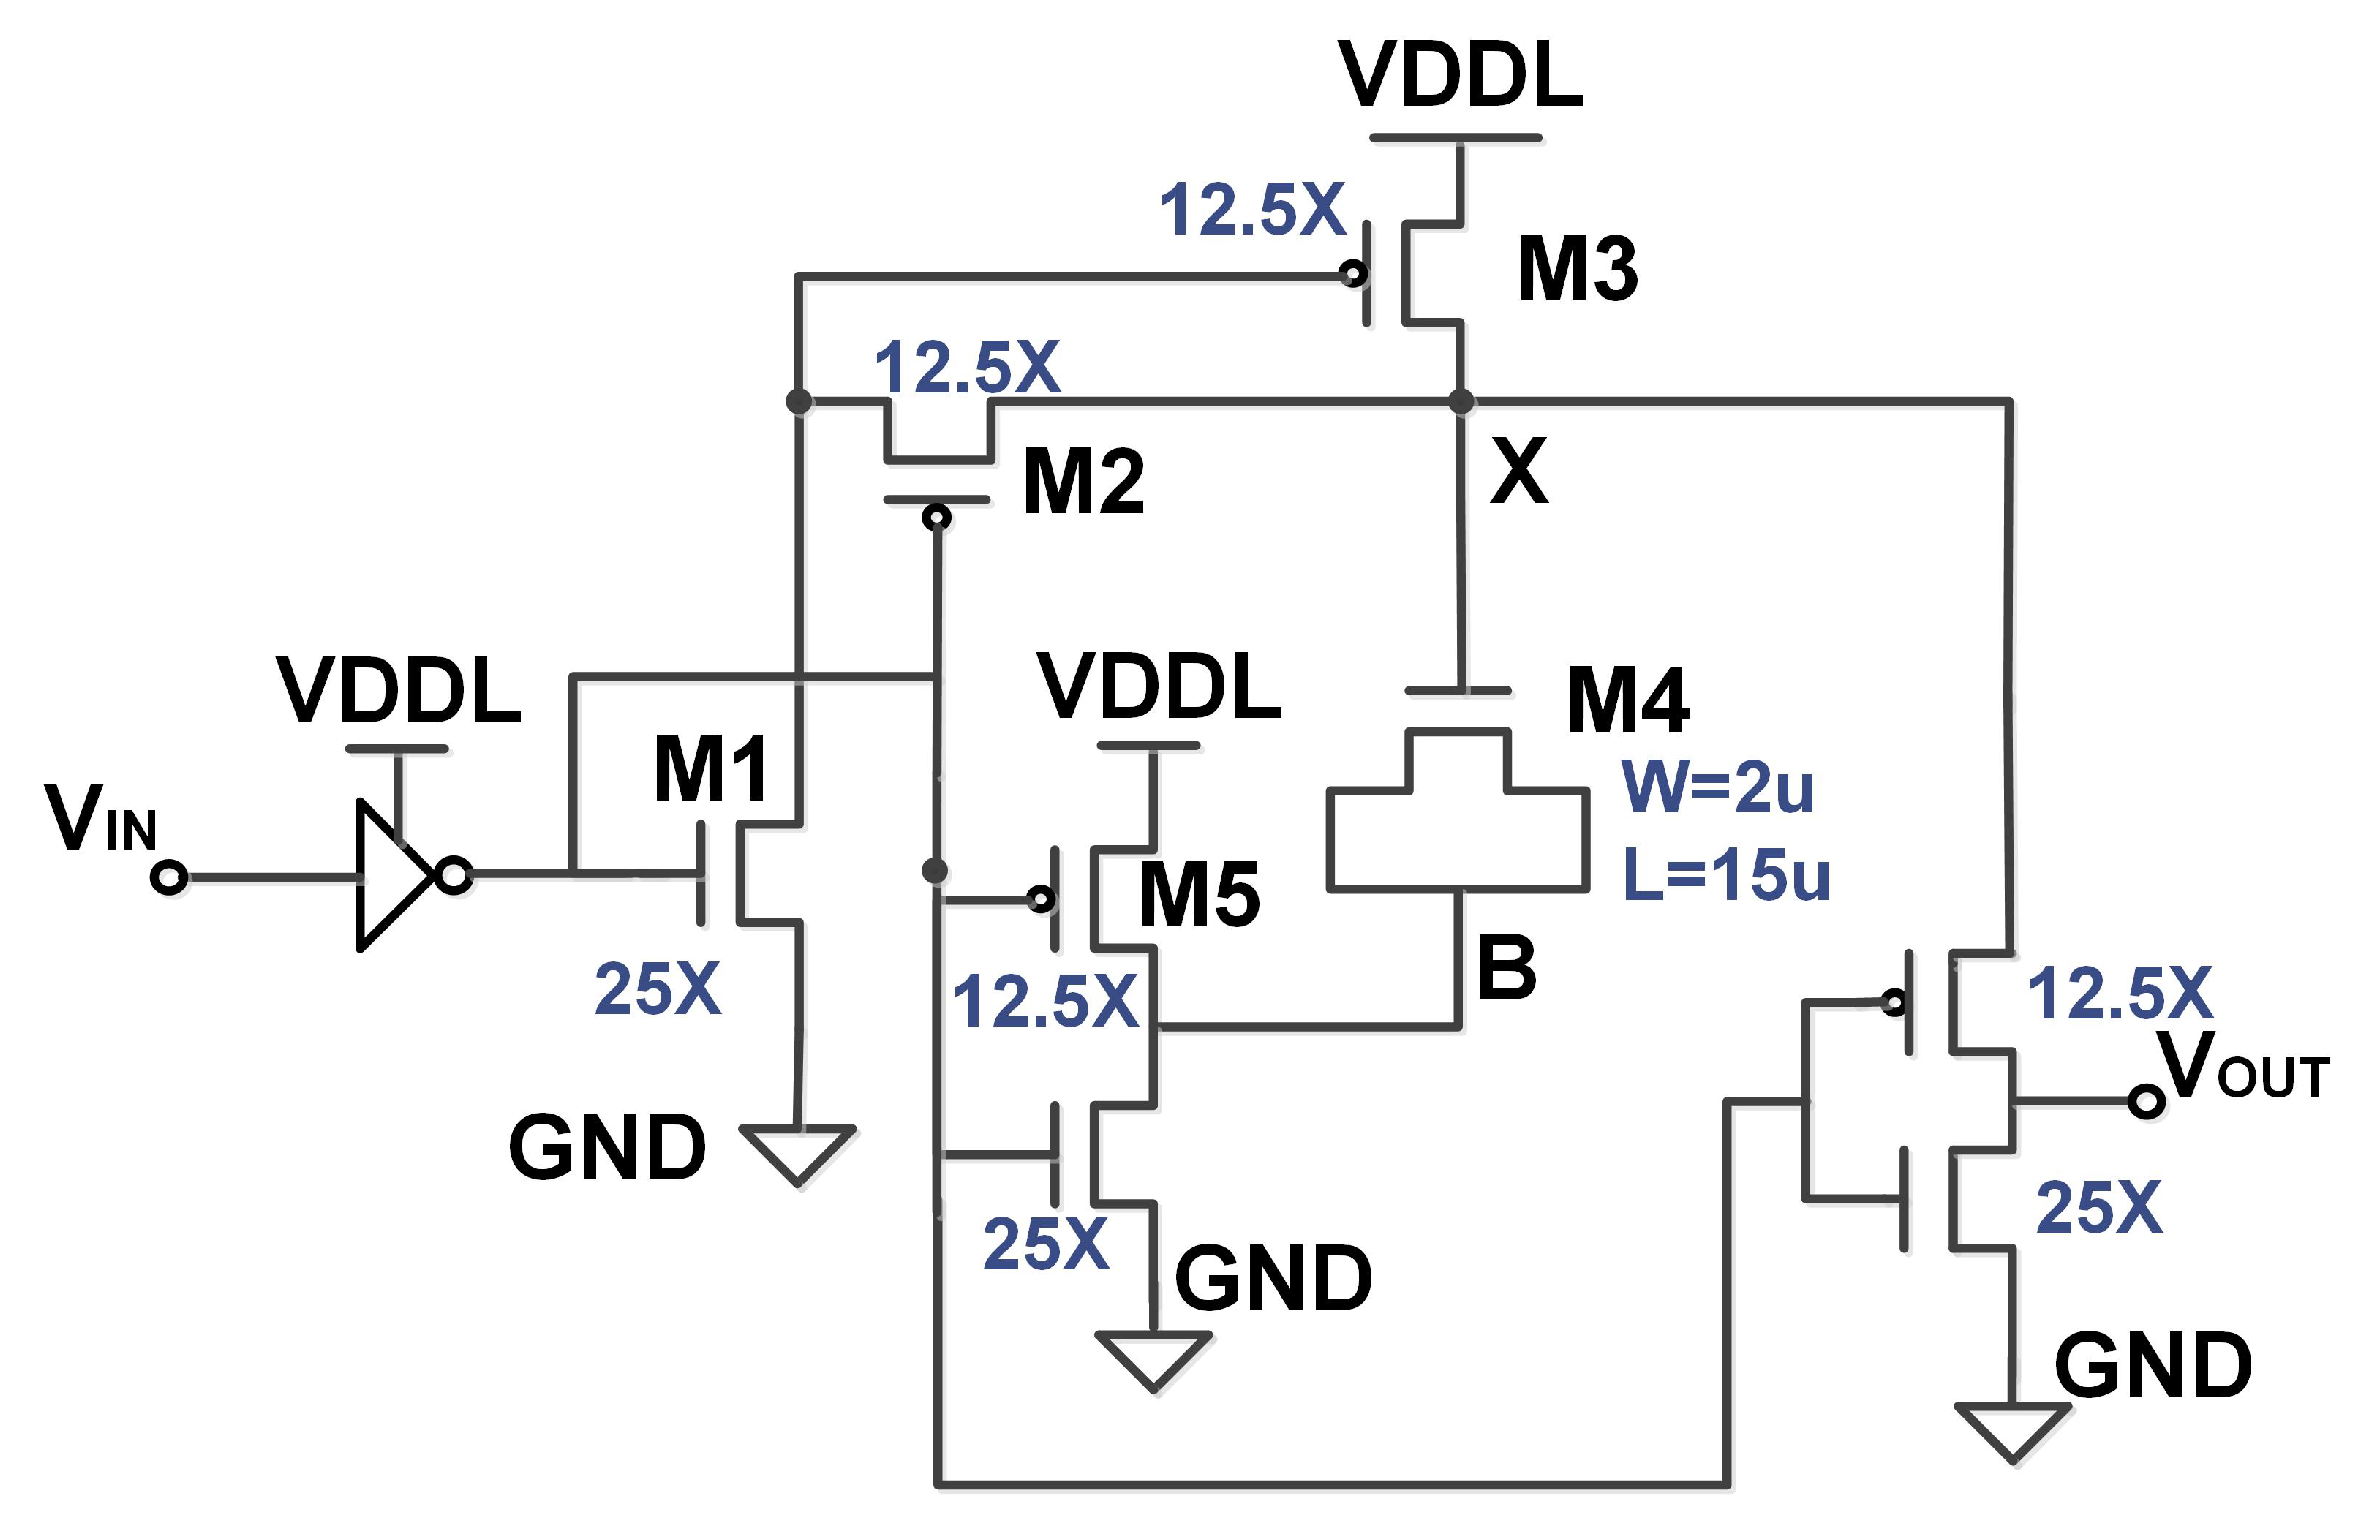 Jlpea Free Full Text A Design And Theoretical Analysis Of 145 Multi Output Lowvoltage Power Supply For Tel Cmos Circuit No